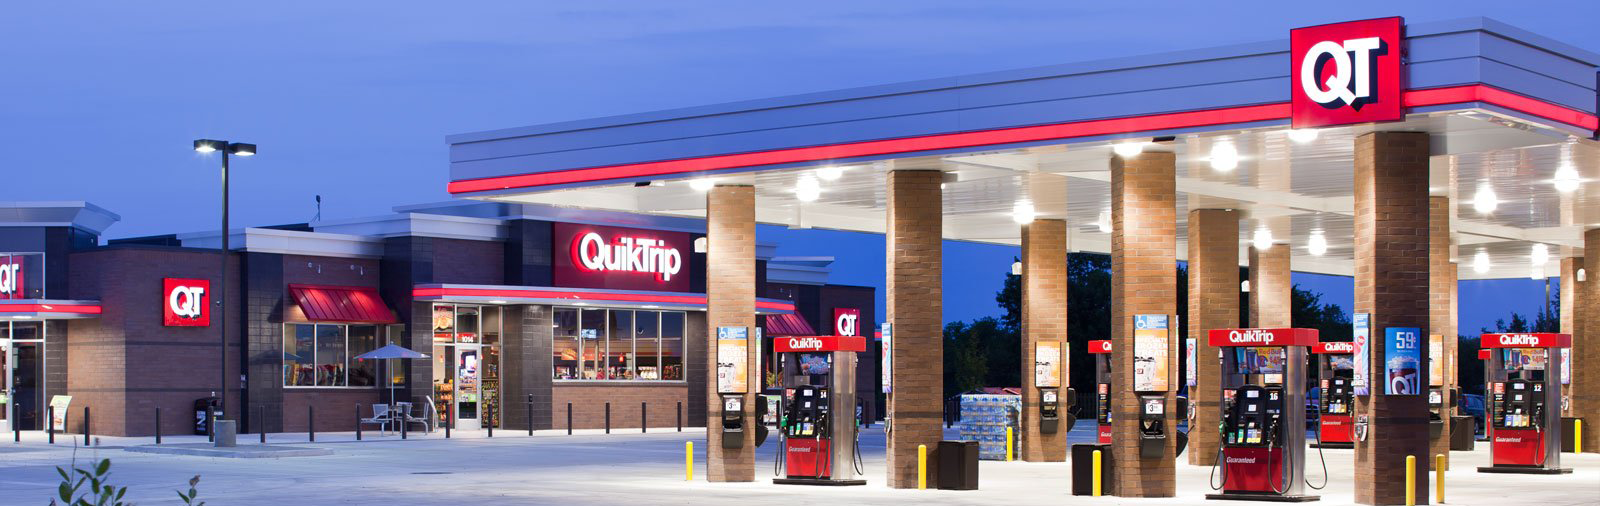 Qt Gas Station Near Me also acchio Ferrera Italy moreover acchio Ferrera Italy together with Mor Hvr further Screen X. on qt gas stations locations